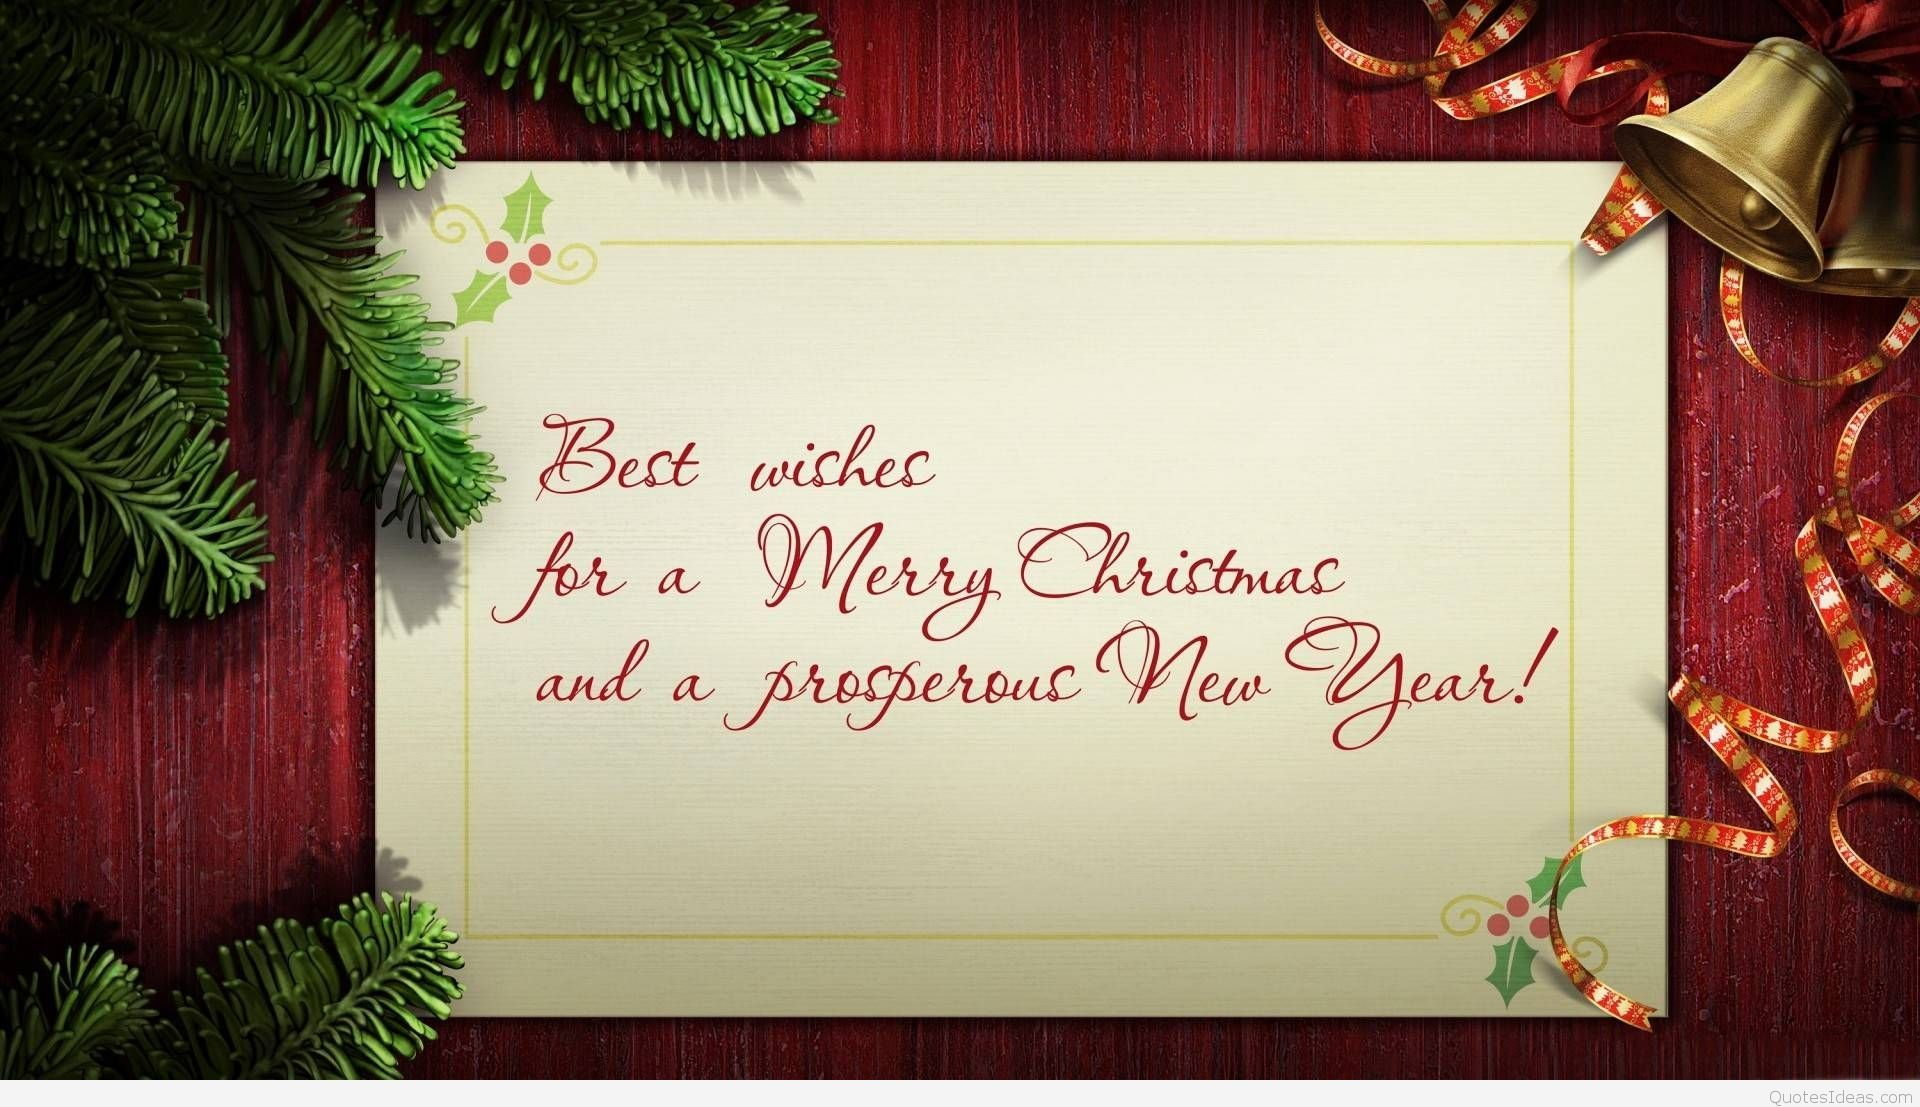 Best Wishes For A Merry Christmas And A Prosperous New Year Merry Christmas Greetings Merry Christmas Poems Merry Christmas Card Greetings